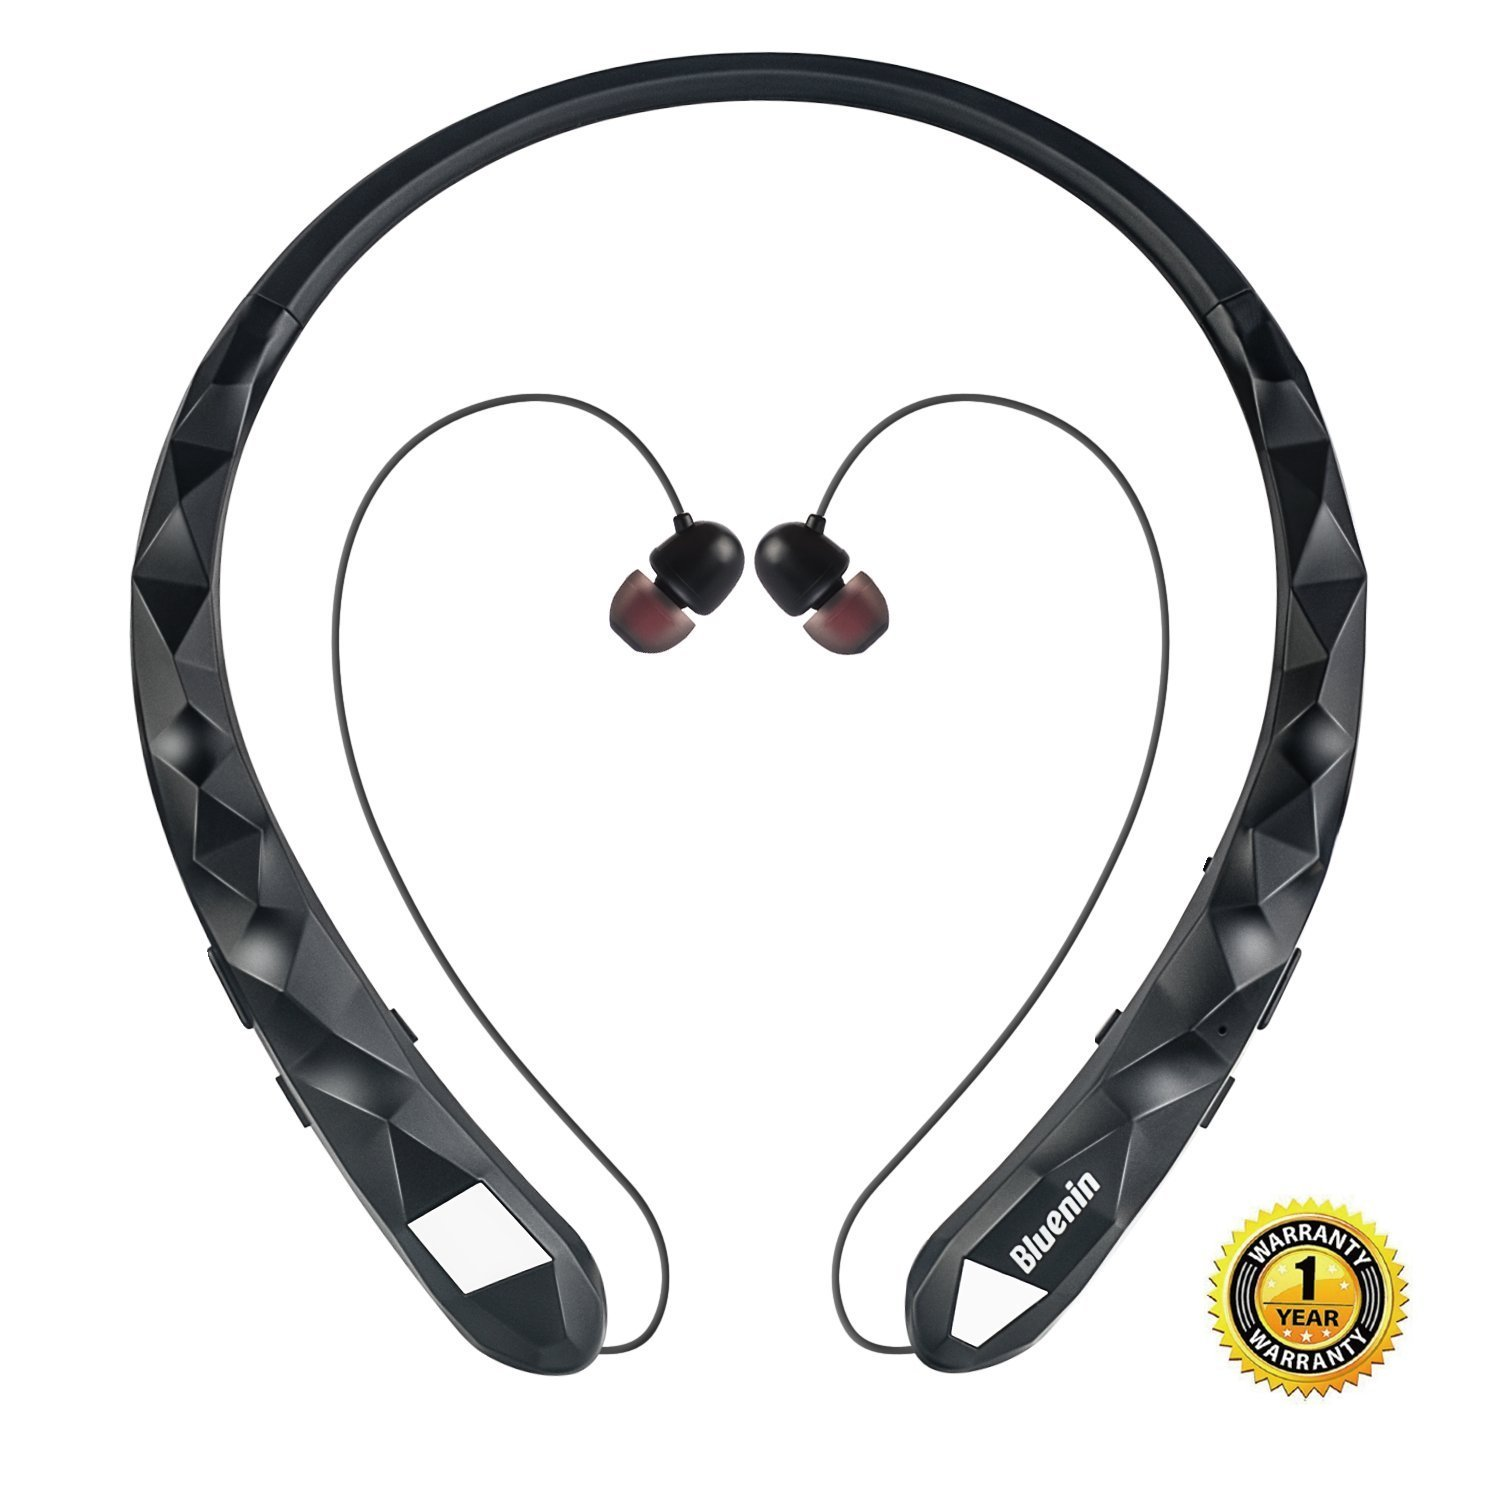 Bluenin 919 Bluetooth Sports Headphones Neckband